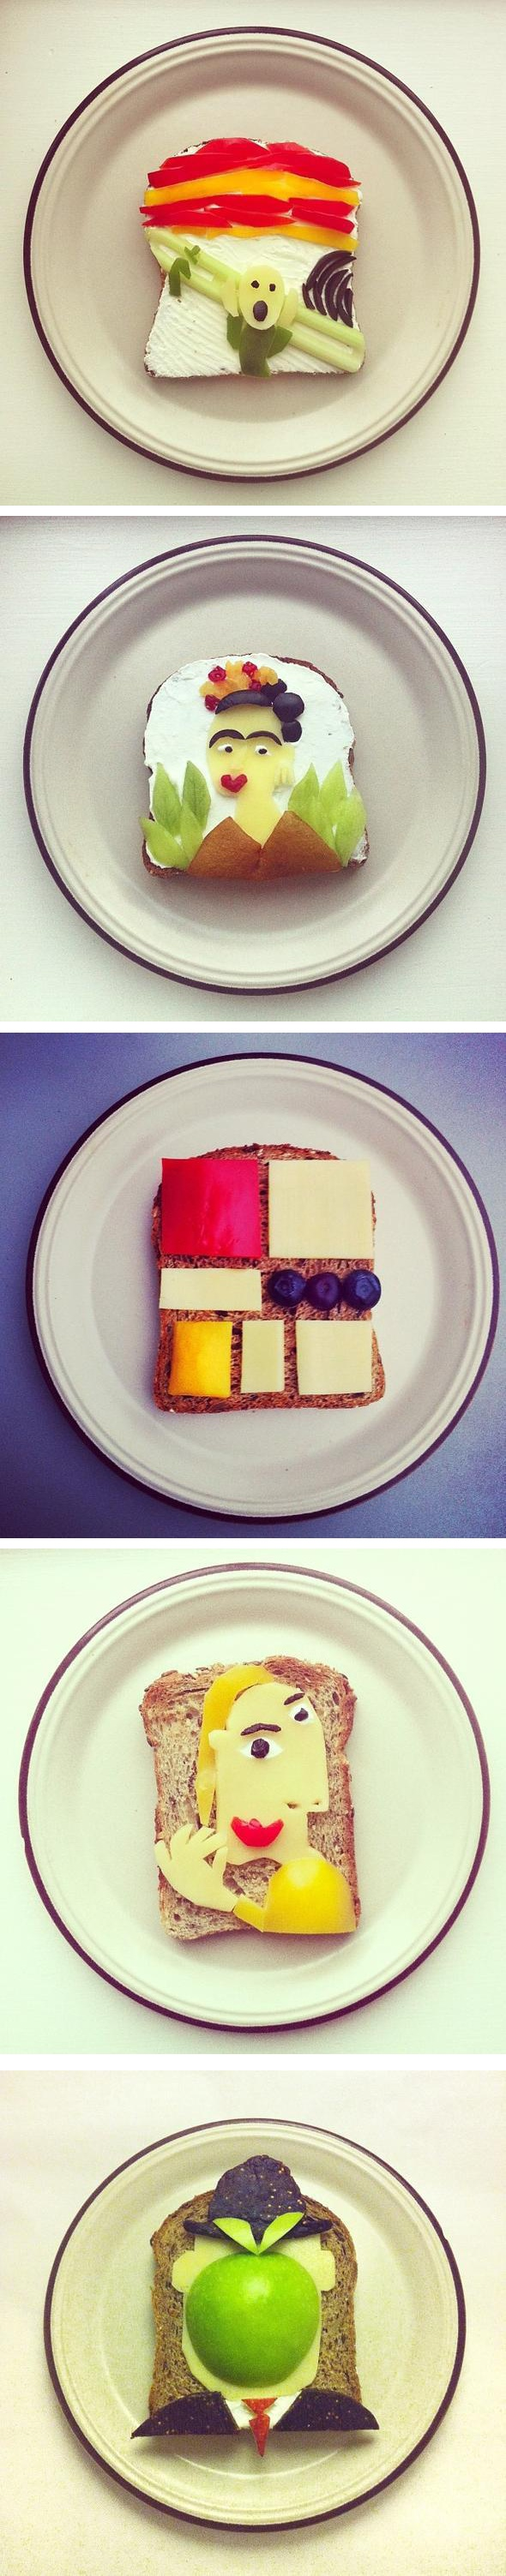 Famous Works of Art as Food